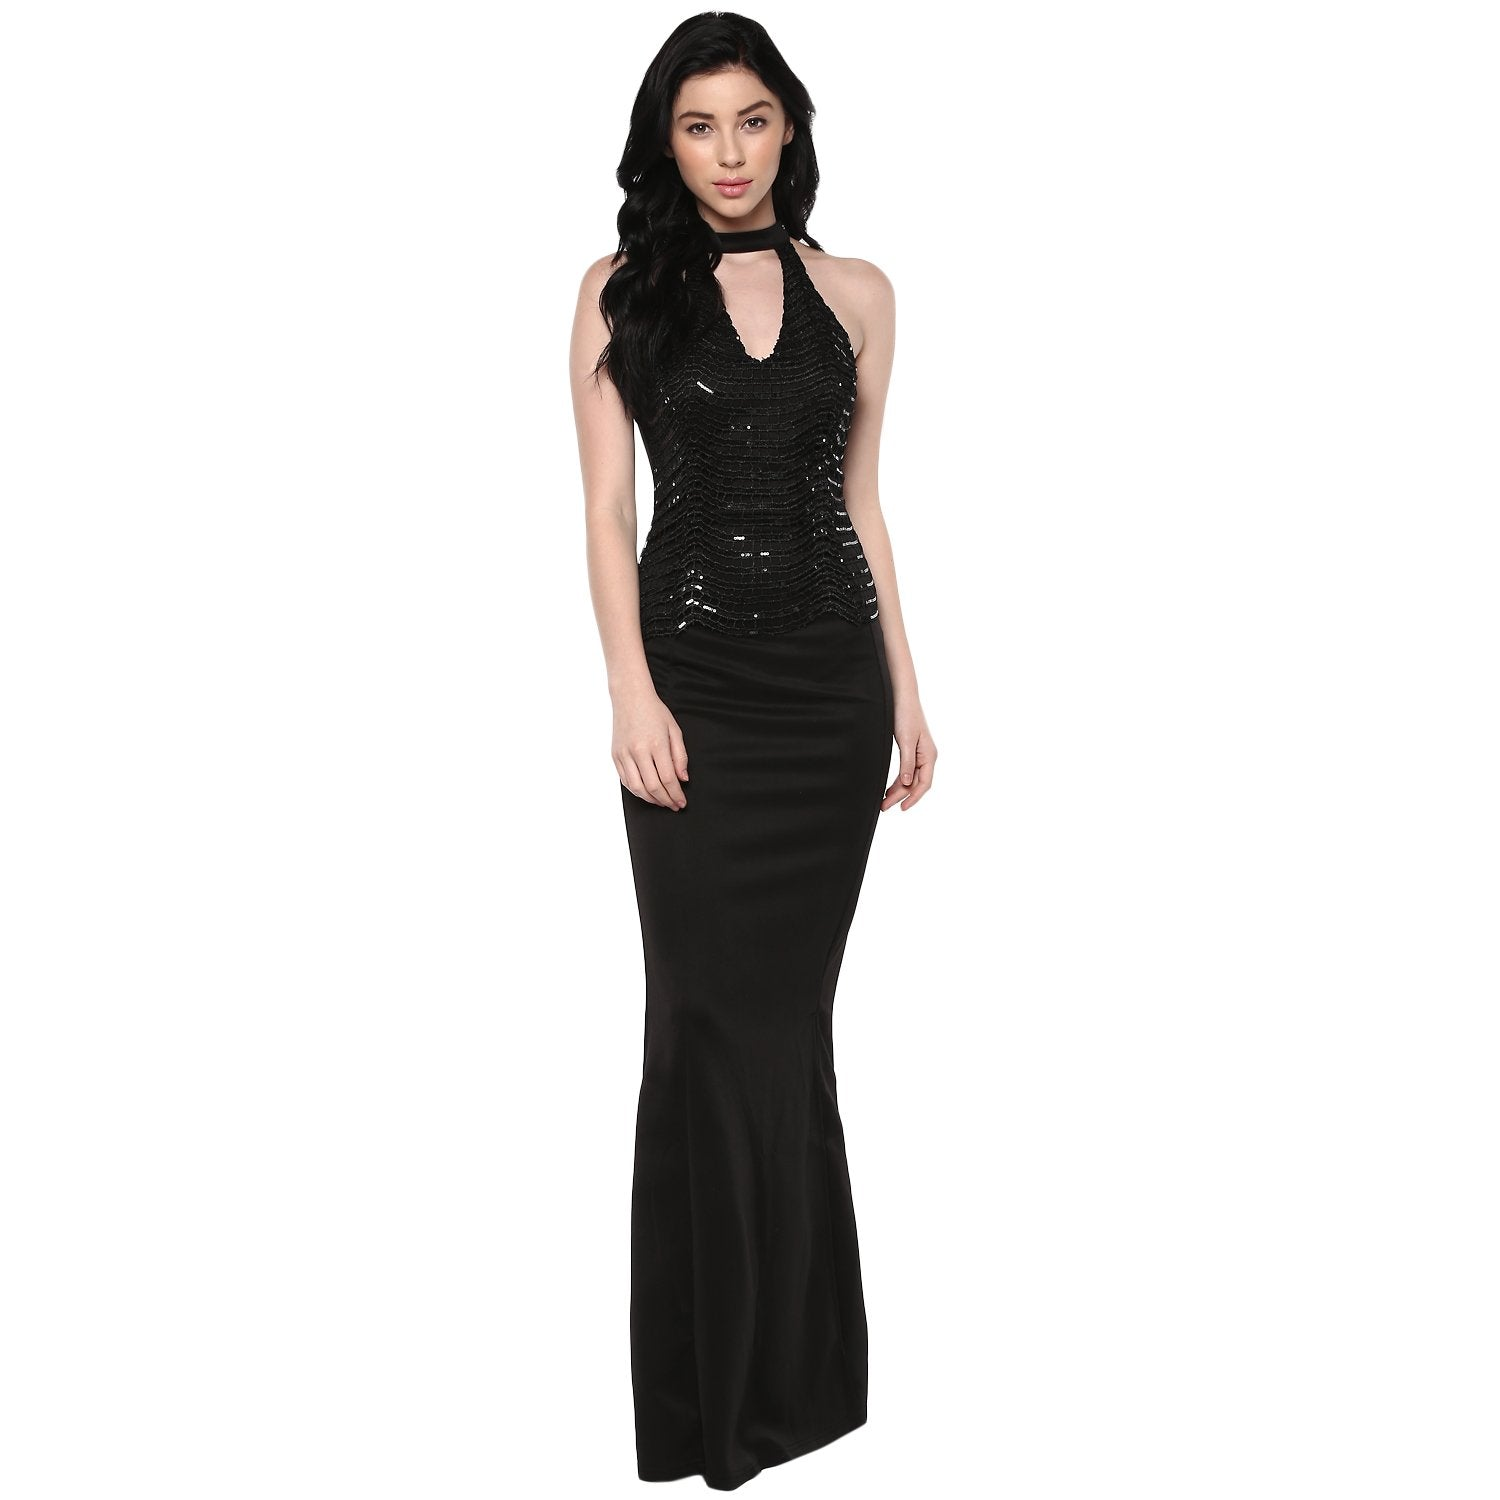 Jaune Milan Alexendria Theme Sequin Cut Work Embellished Choker Neck Sheath Gown - Black